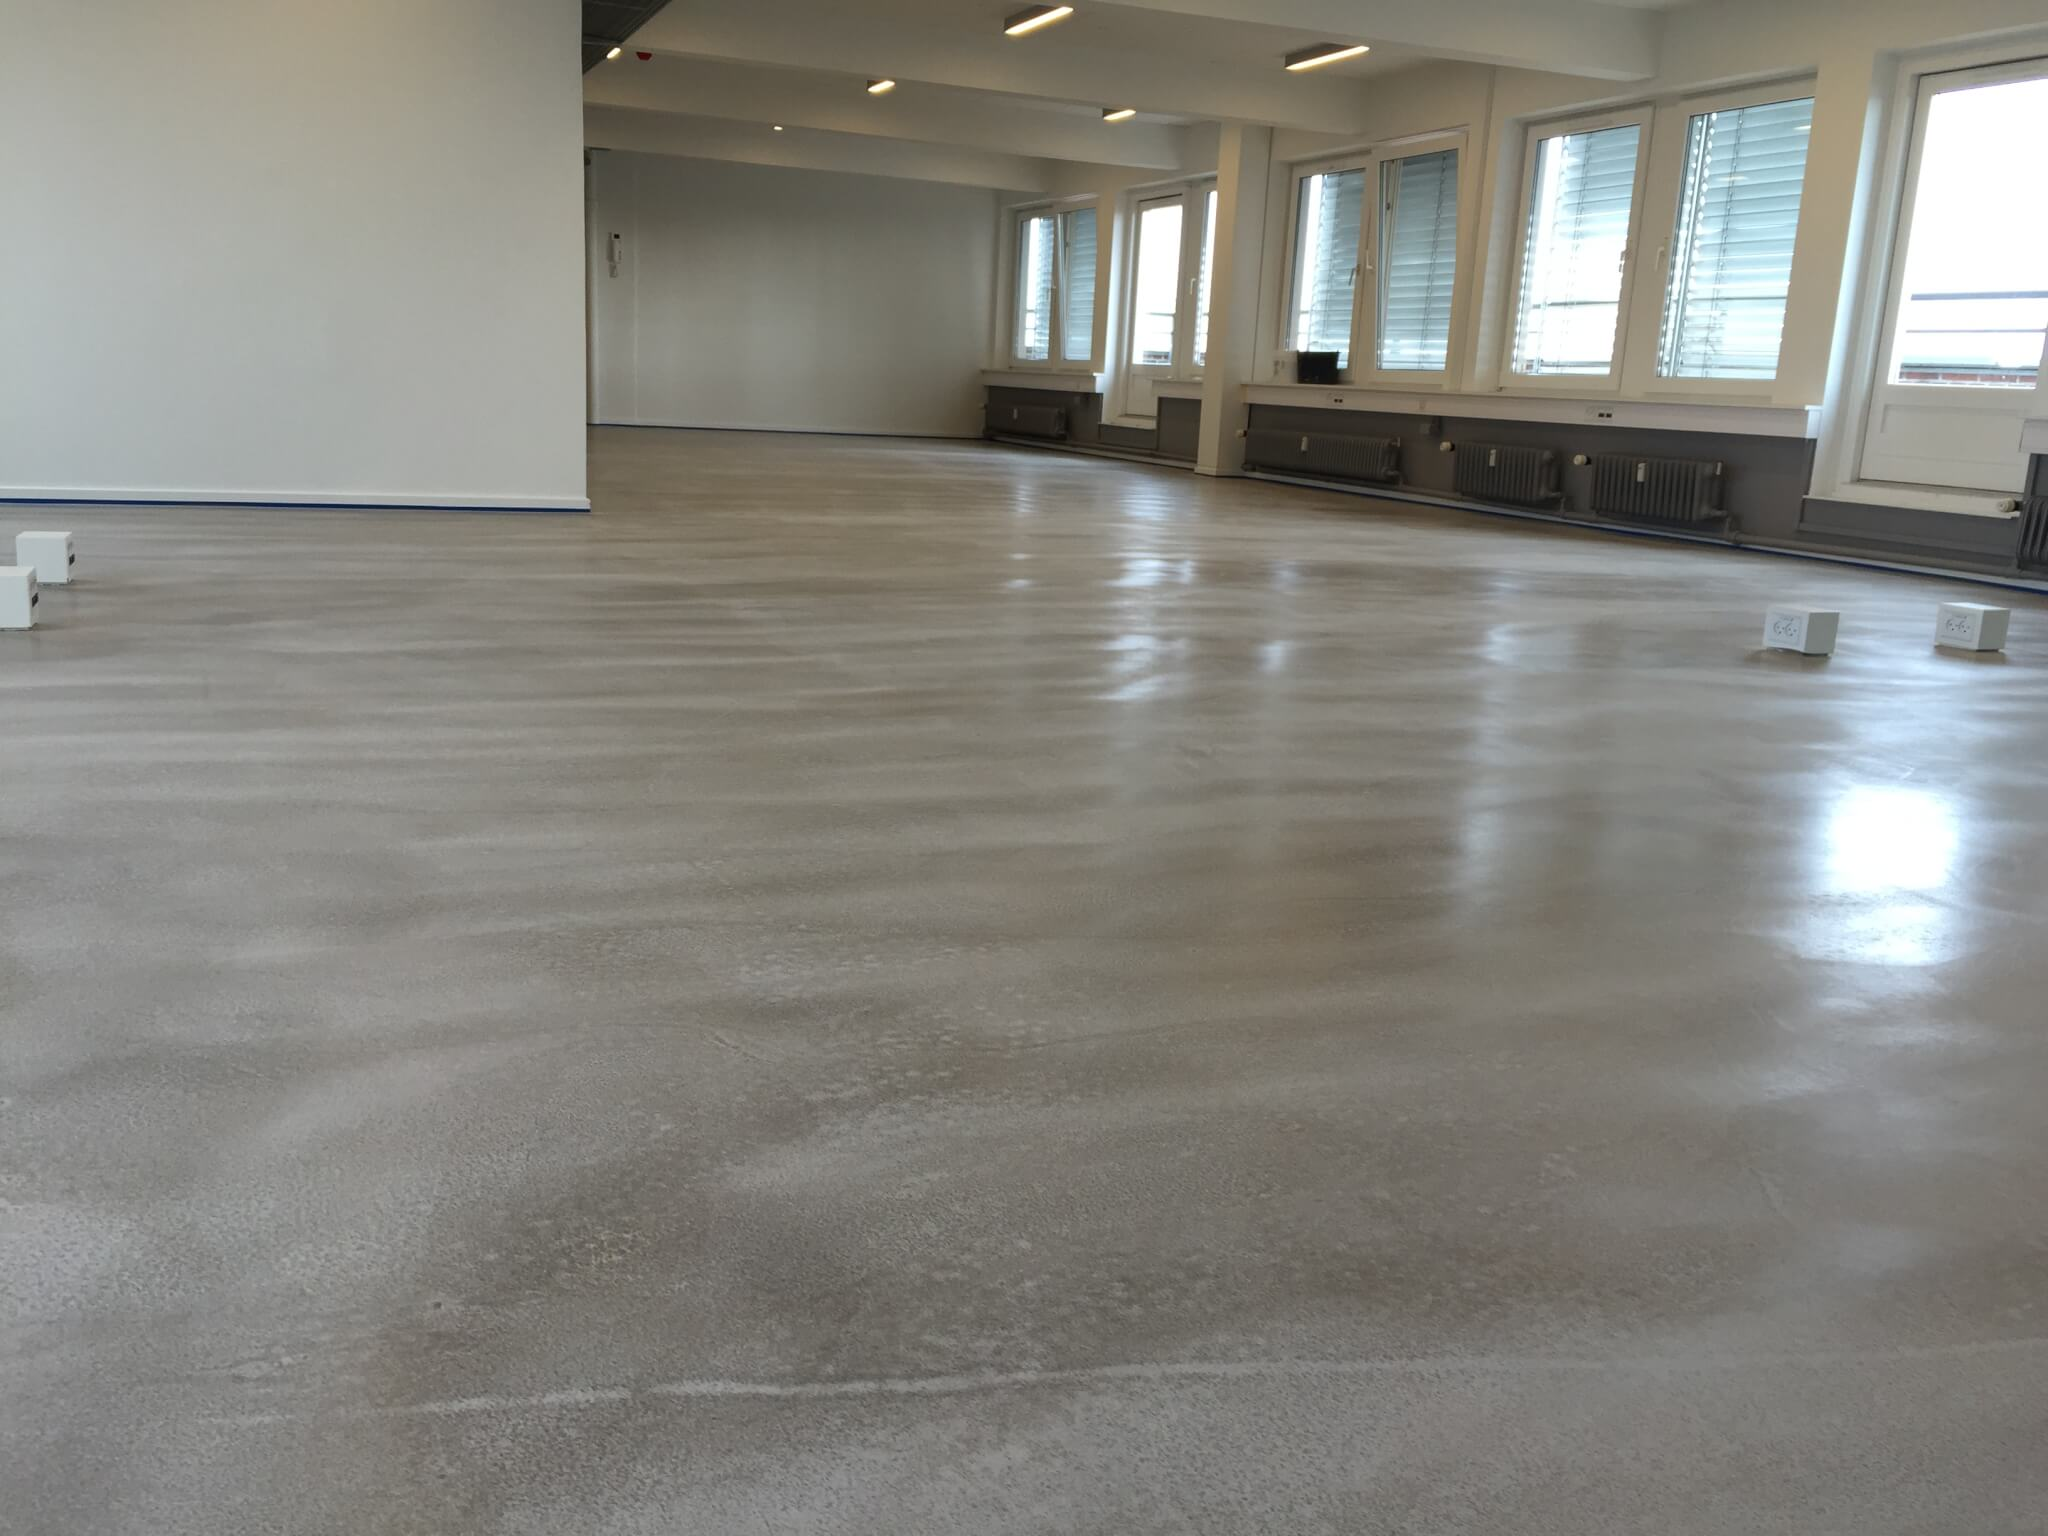 How To Screed A Floor >> What Is The Difference Between Concrete And Screed